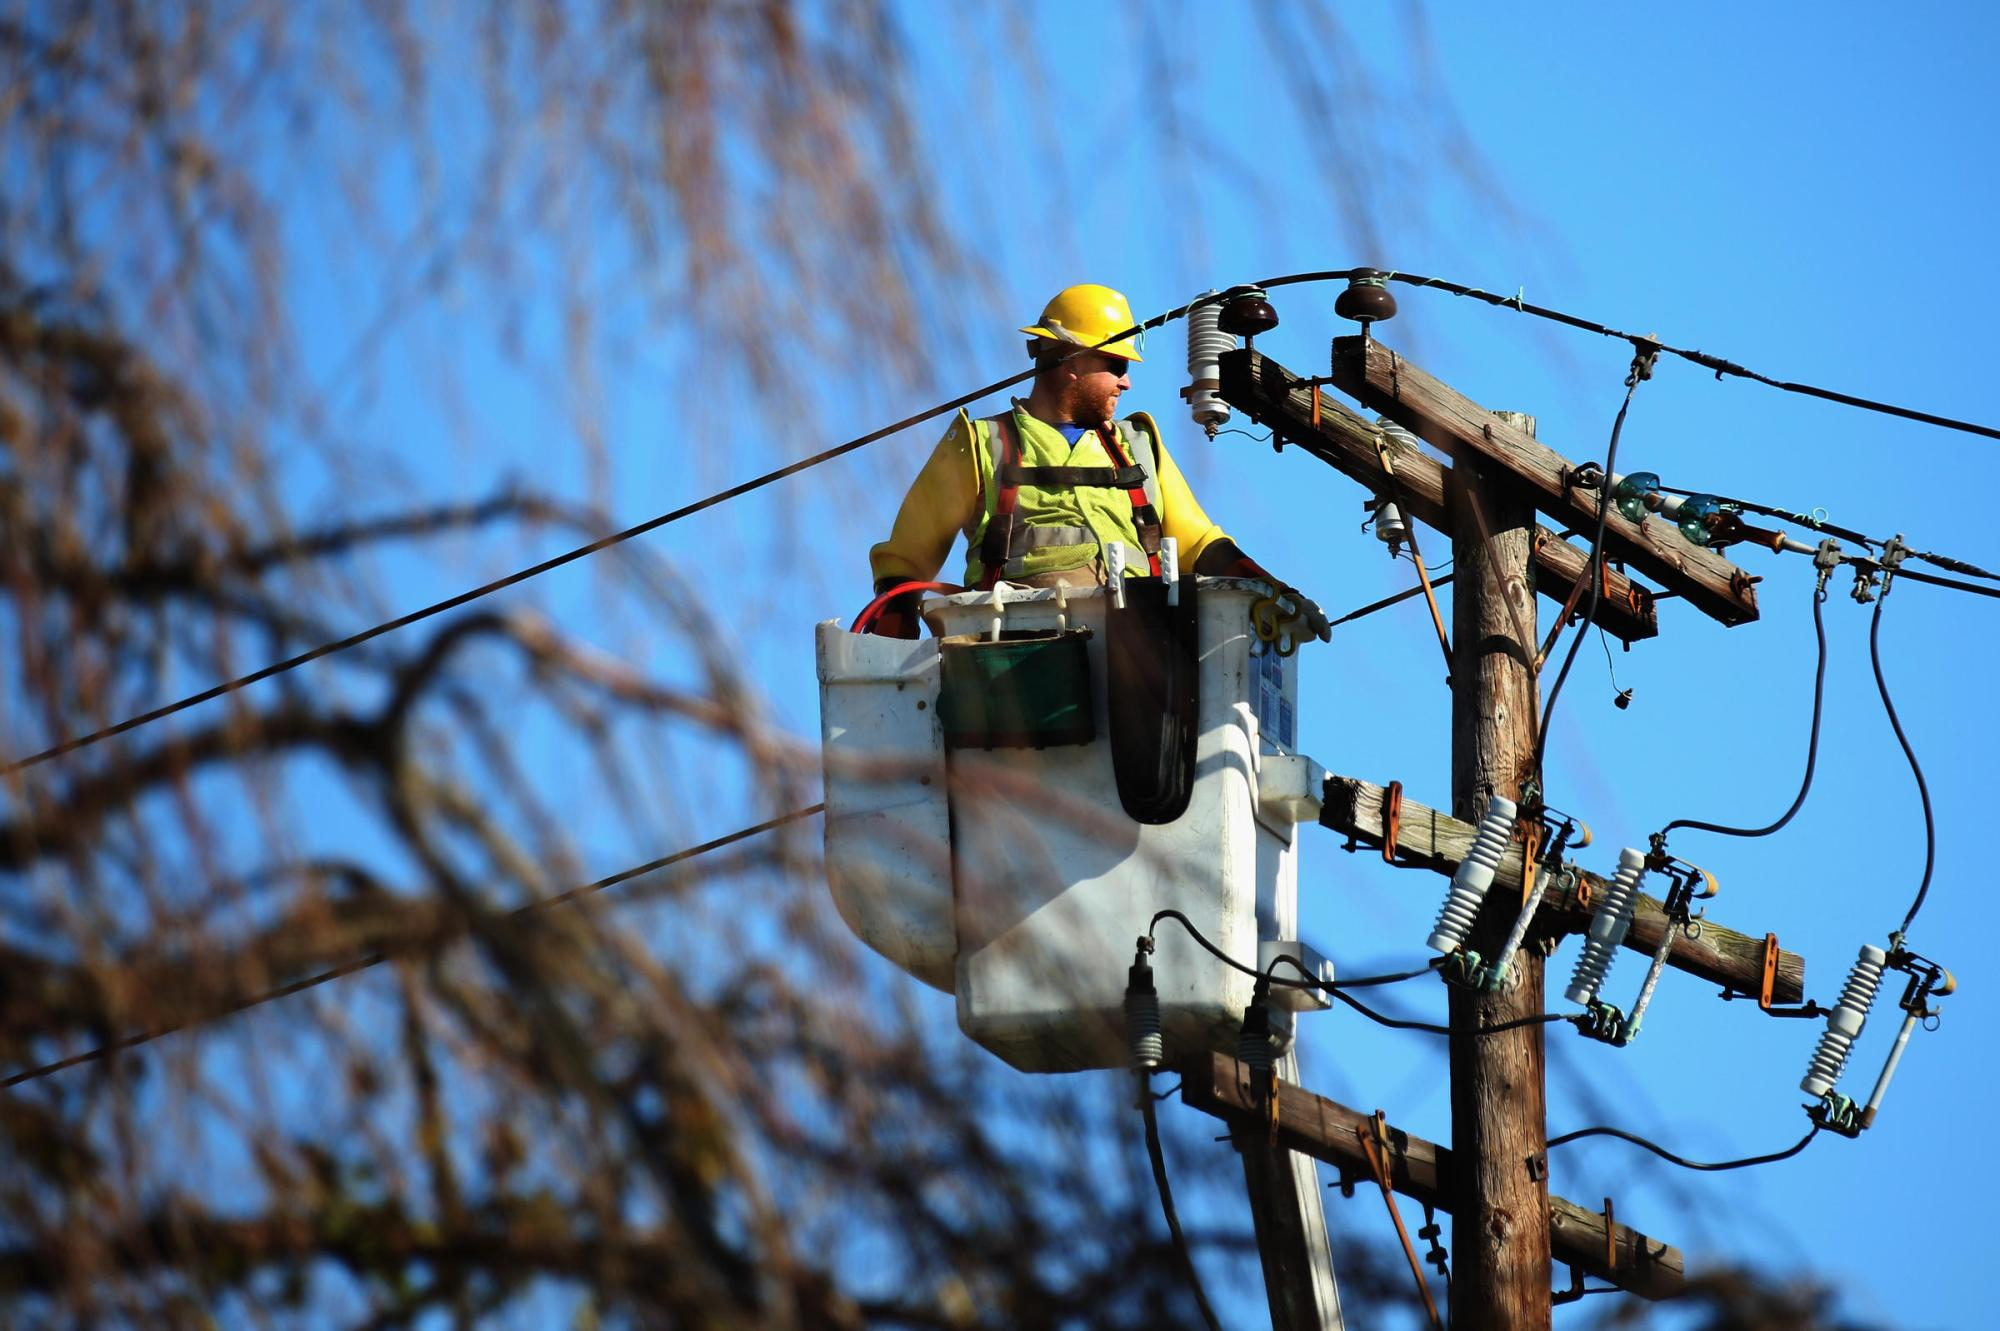 hight resolution of a worker repairs electrical lines in plainview n y after superstorm sandy in 2012